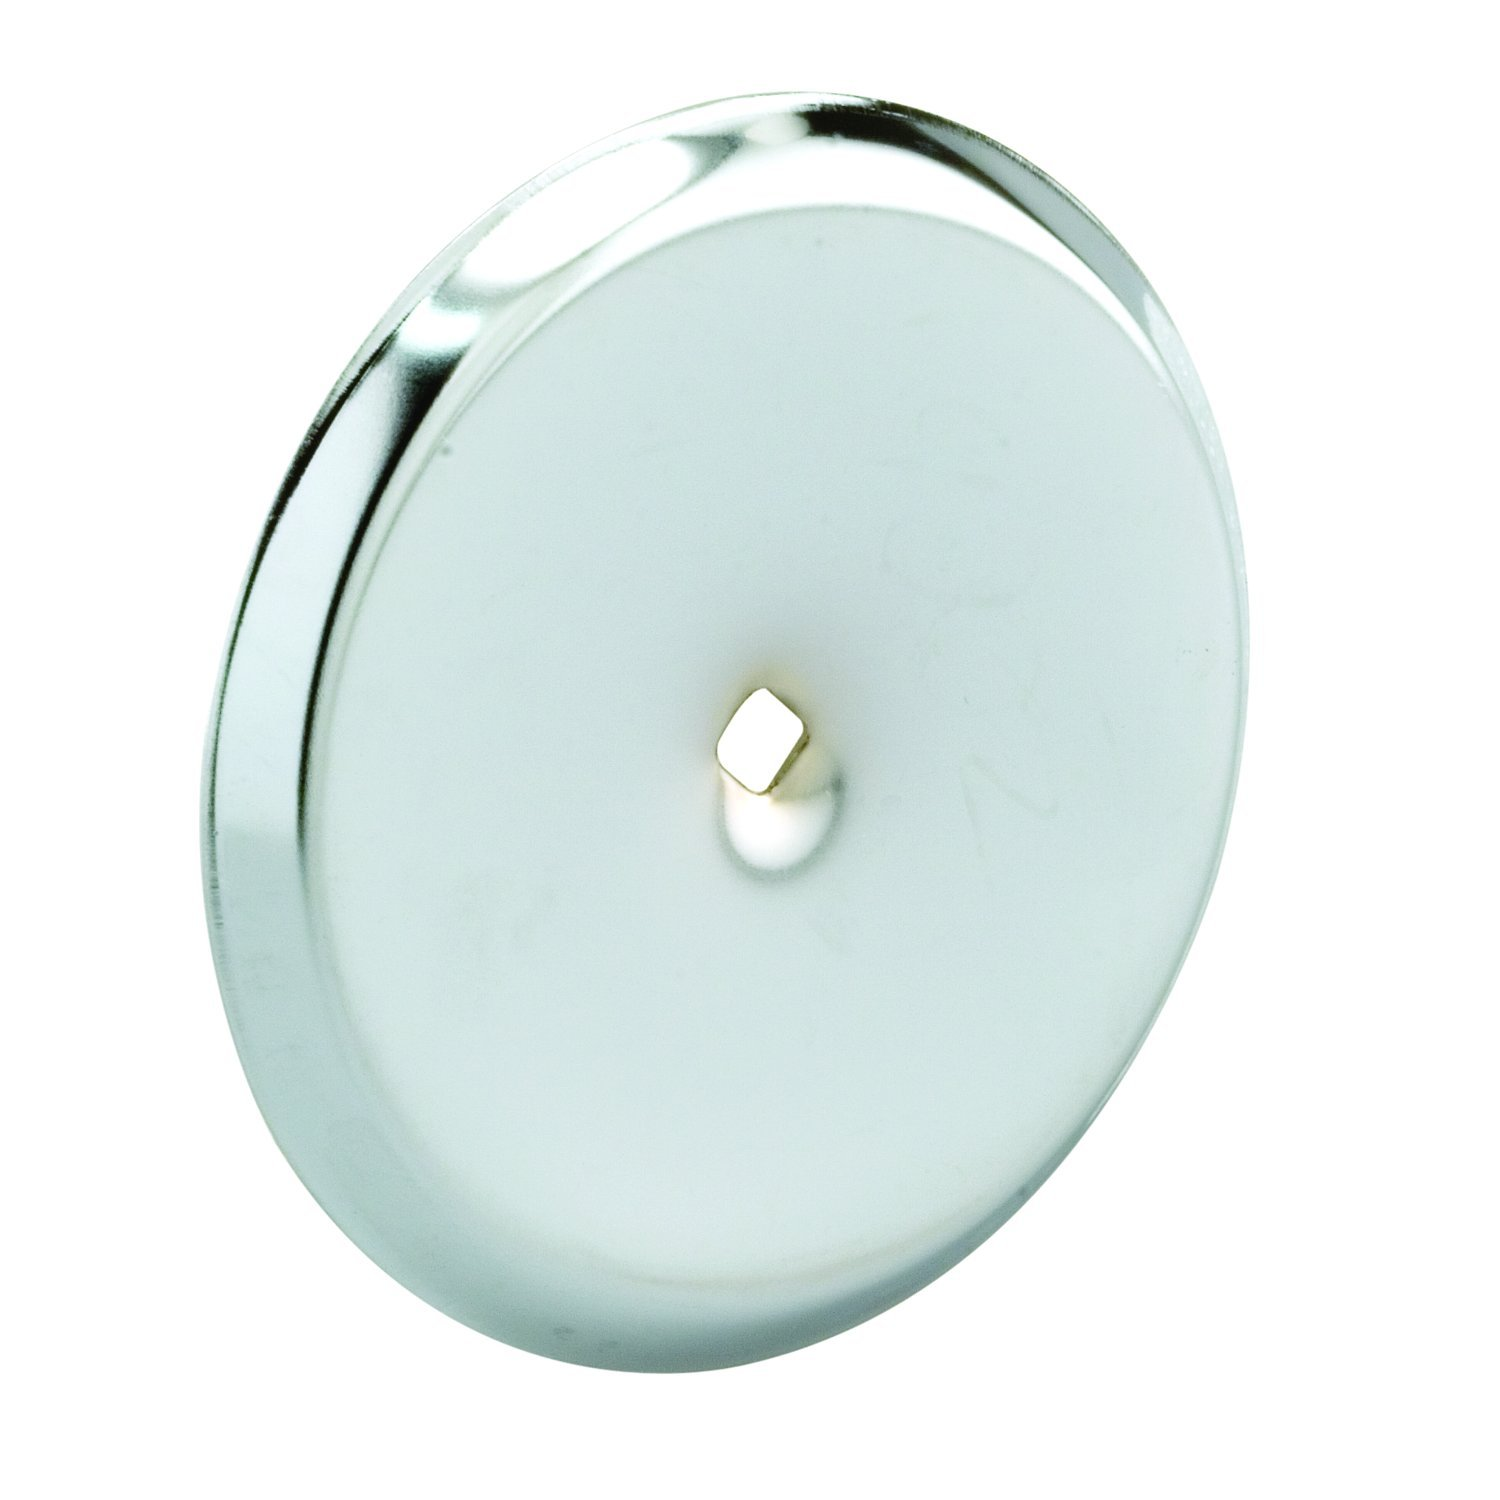 Prime-Line Products MP9202 Cabinet Knob Backplate, 2-13/16 in. Outside Diameter, Stamped Steel, Chrome Plated Finish, Pack of 5